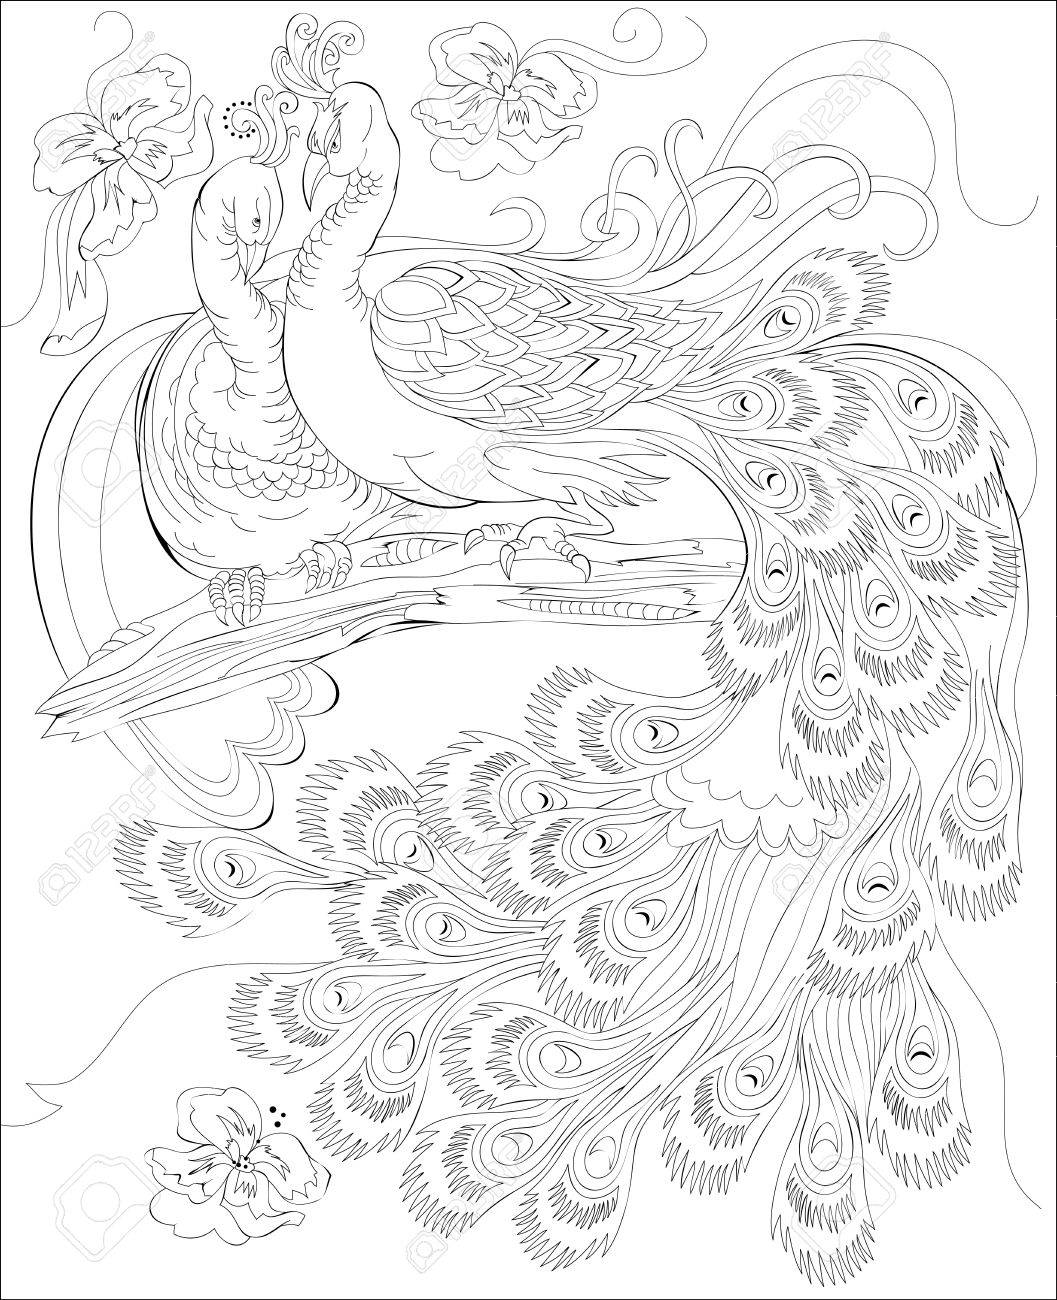 Black and white page for coloring. Fantasy drawing of peacocks couple. Worksheet for children and adults. Vector image. - 74316028